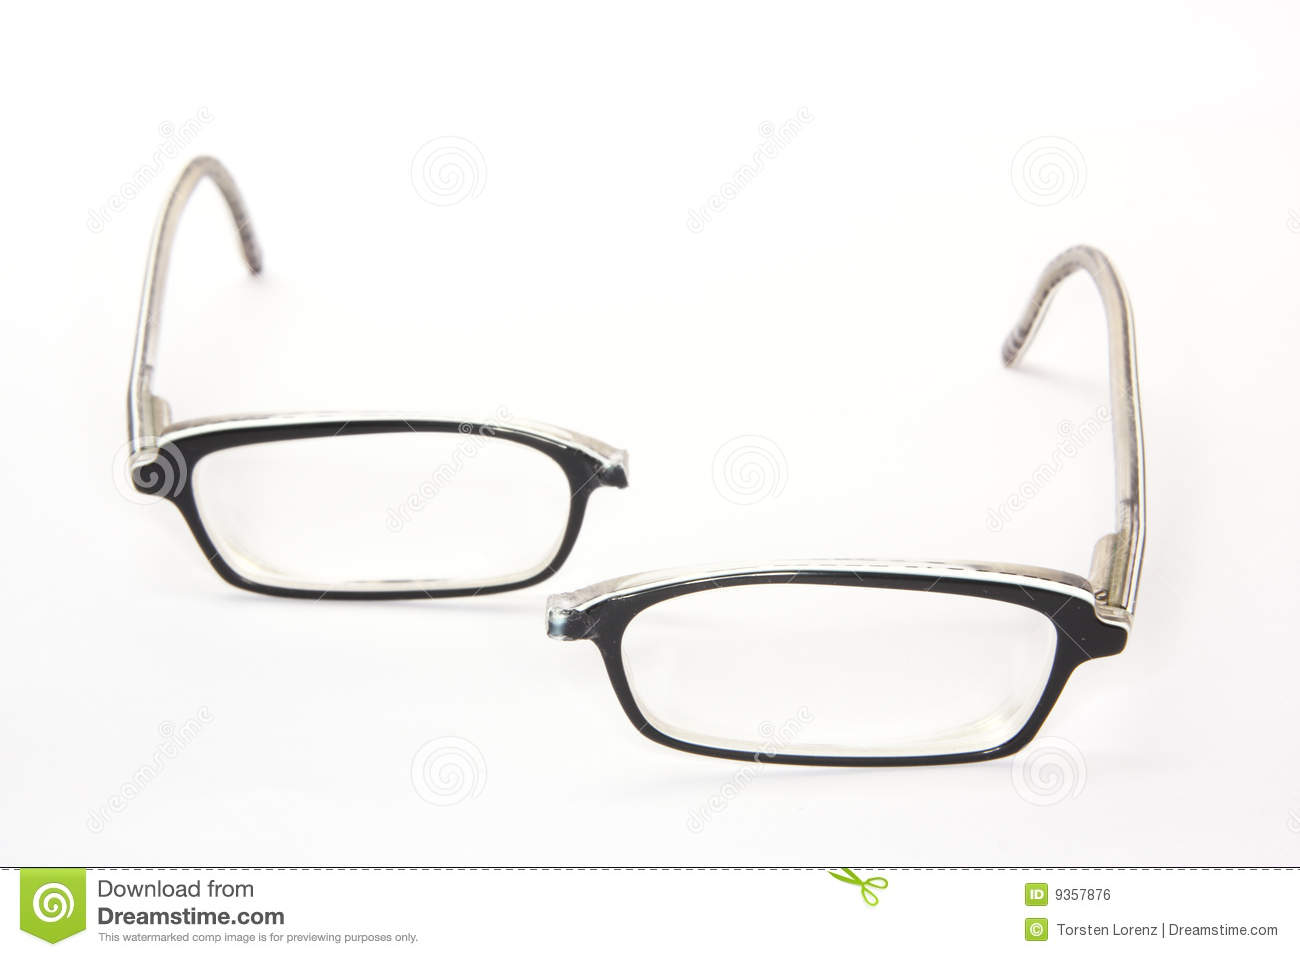 Broken Eyeglasses Royalty Free Stock Image - Image: 9357876